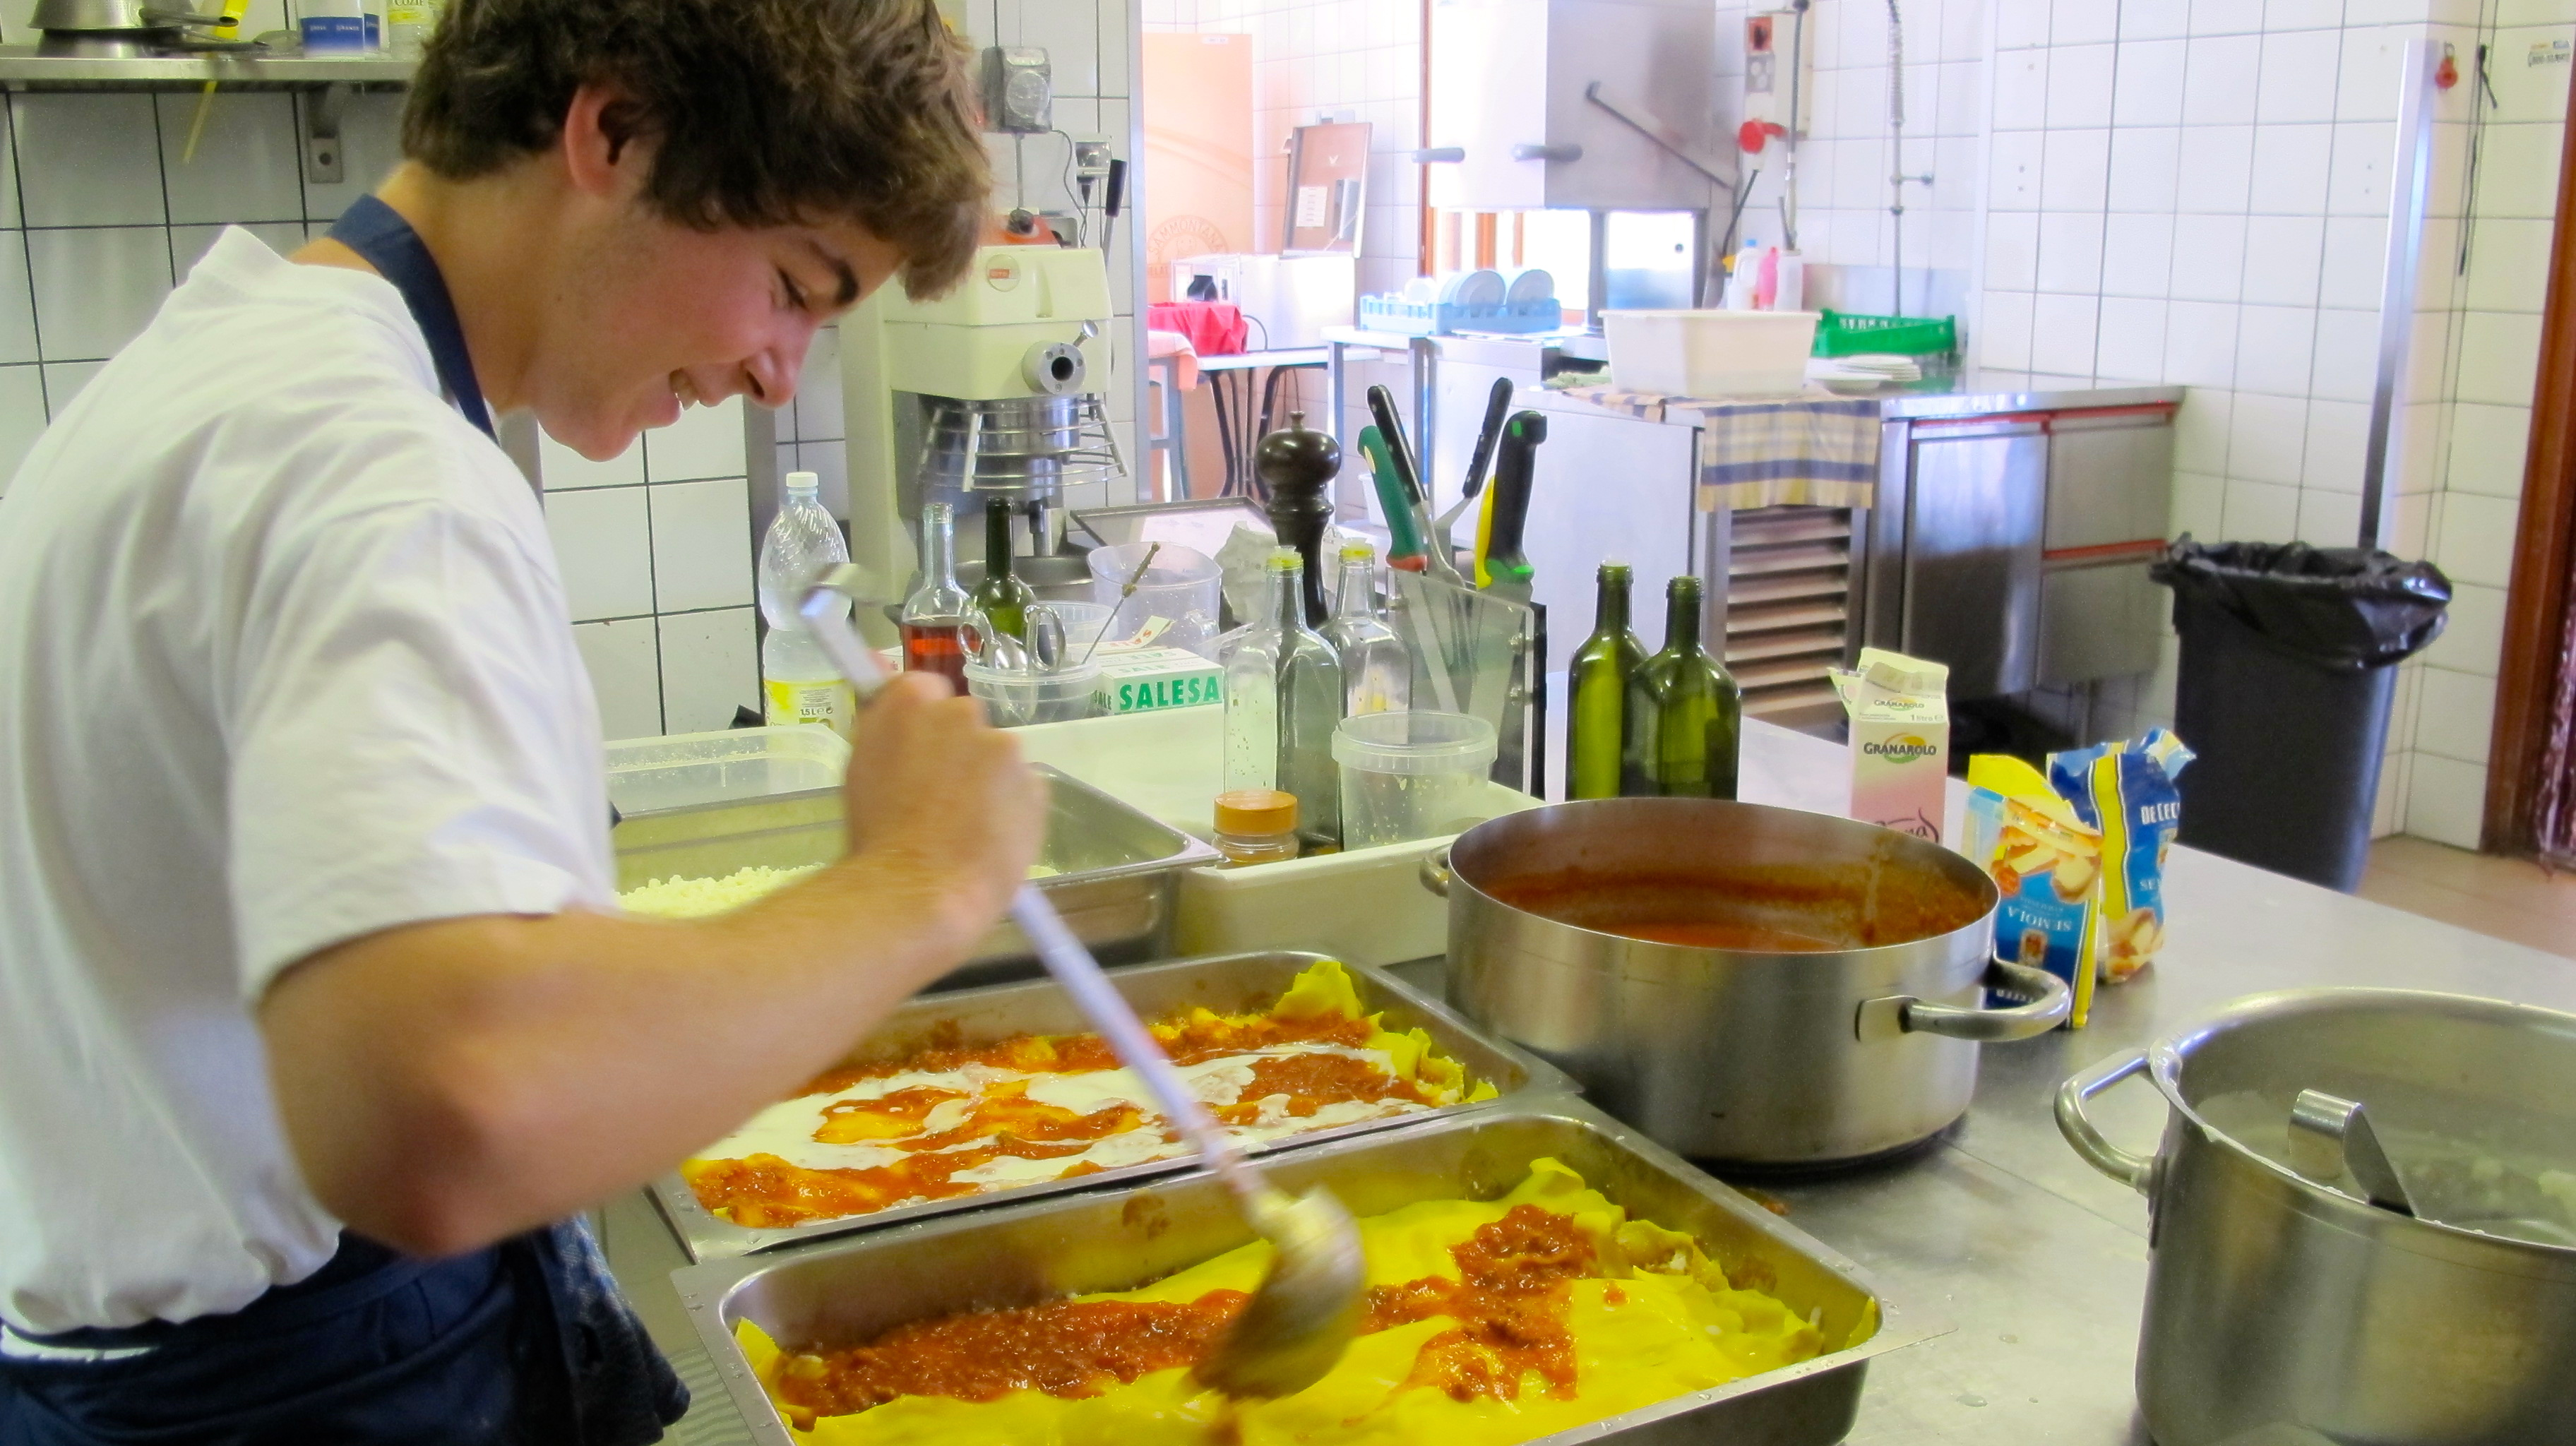 Preparing the homemade lasagna at the Agrihotel Elisabetta.